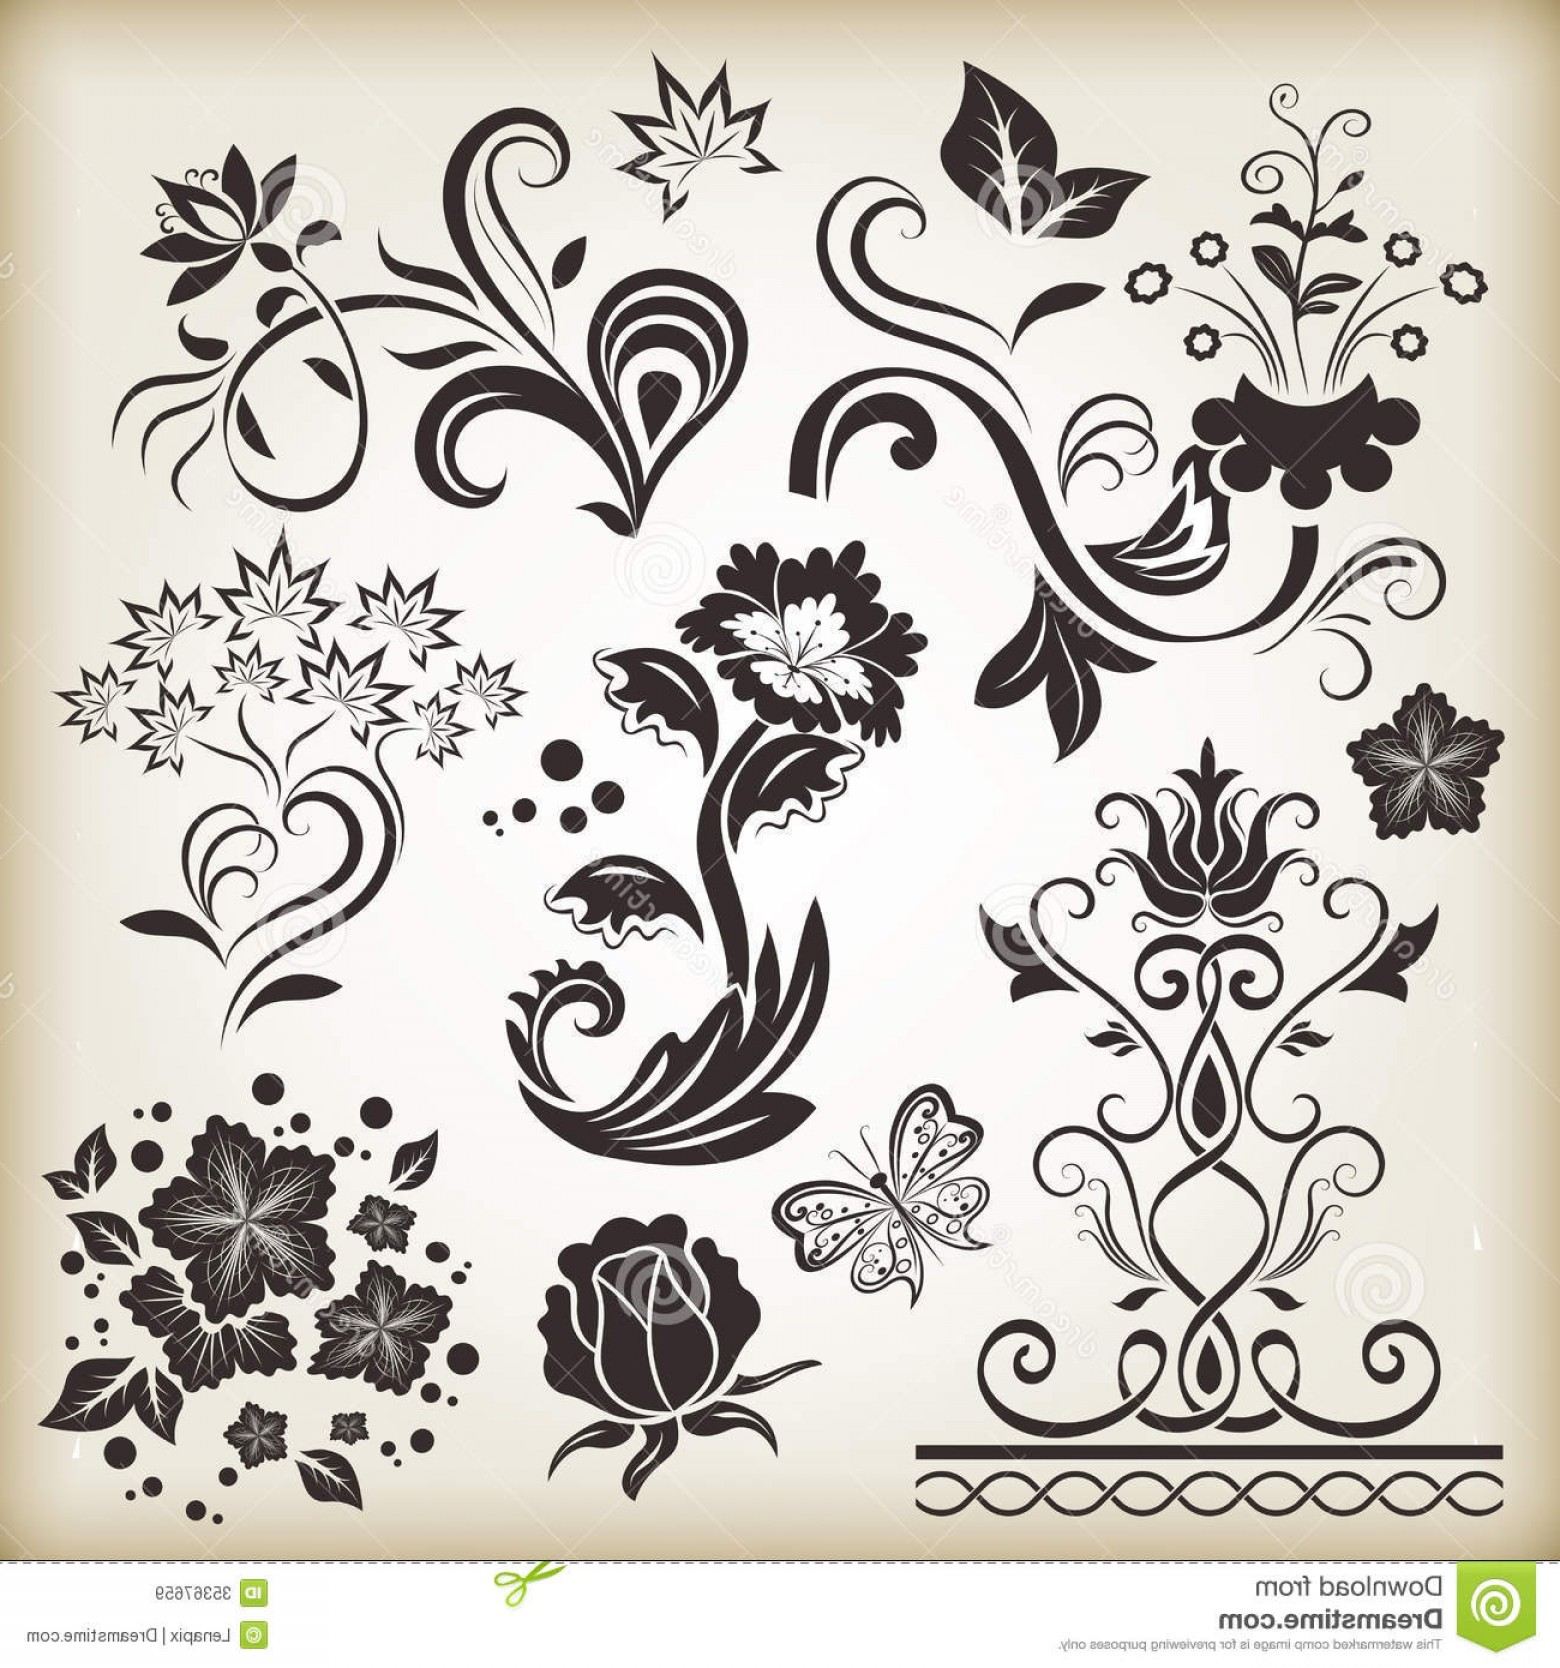 Flower Elements Vector: Royalty Free Stock Images Floral Vintage Design Elements Vector Beige Background Set Image